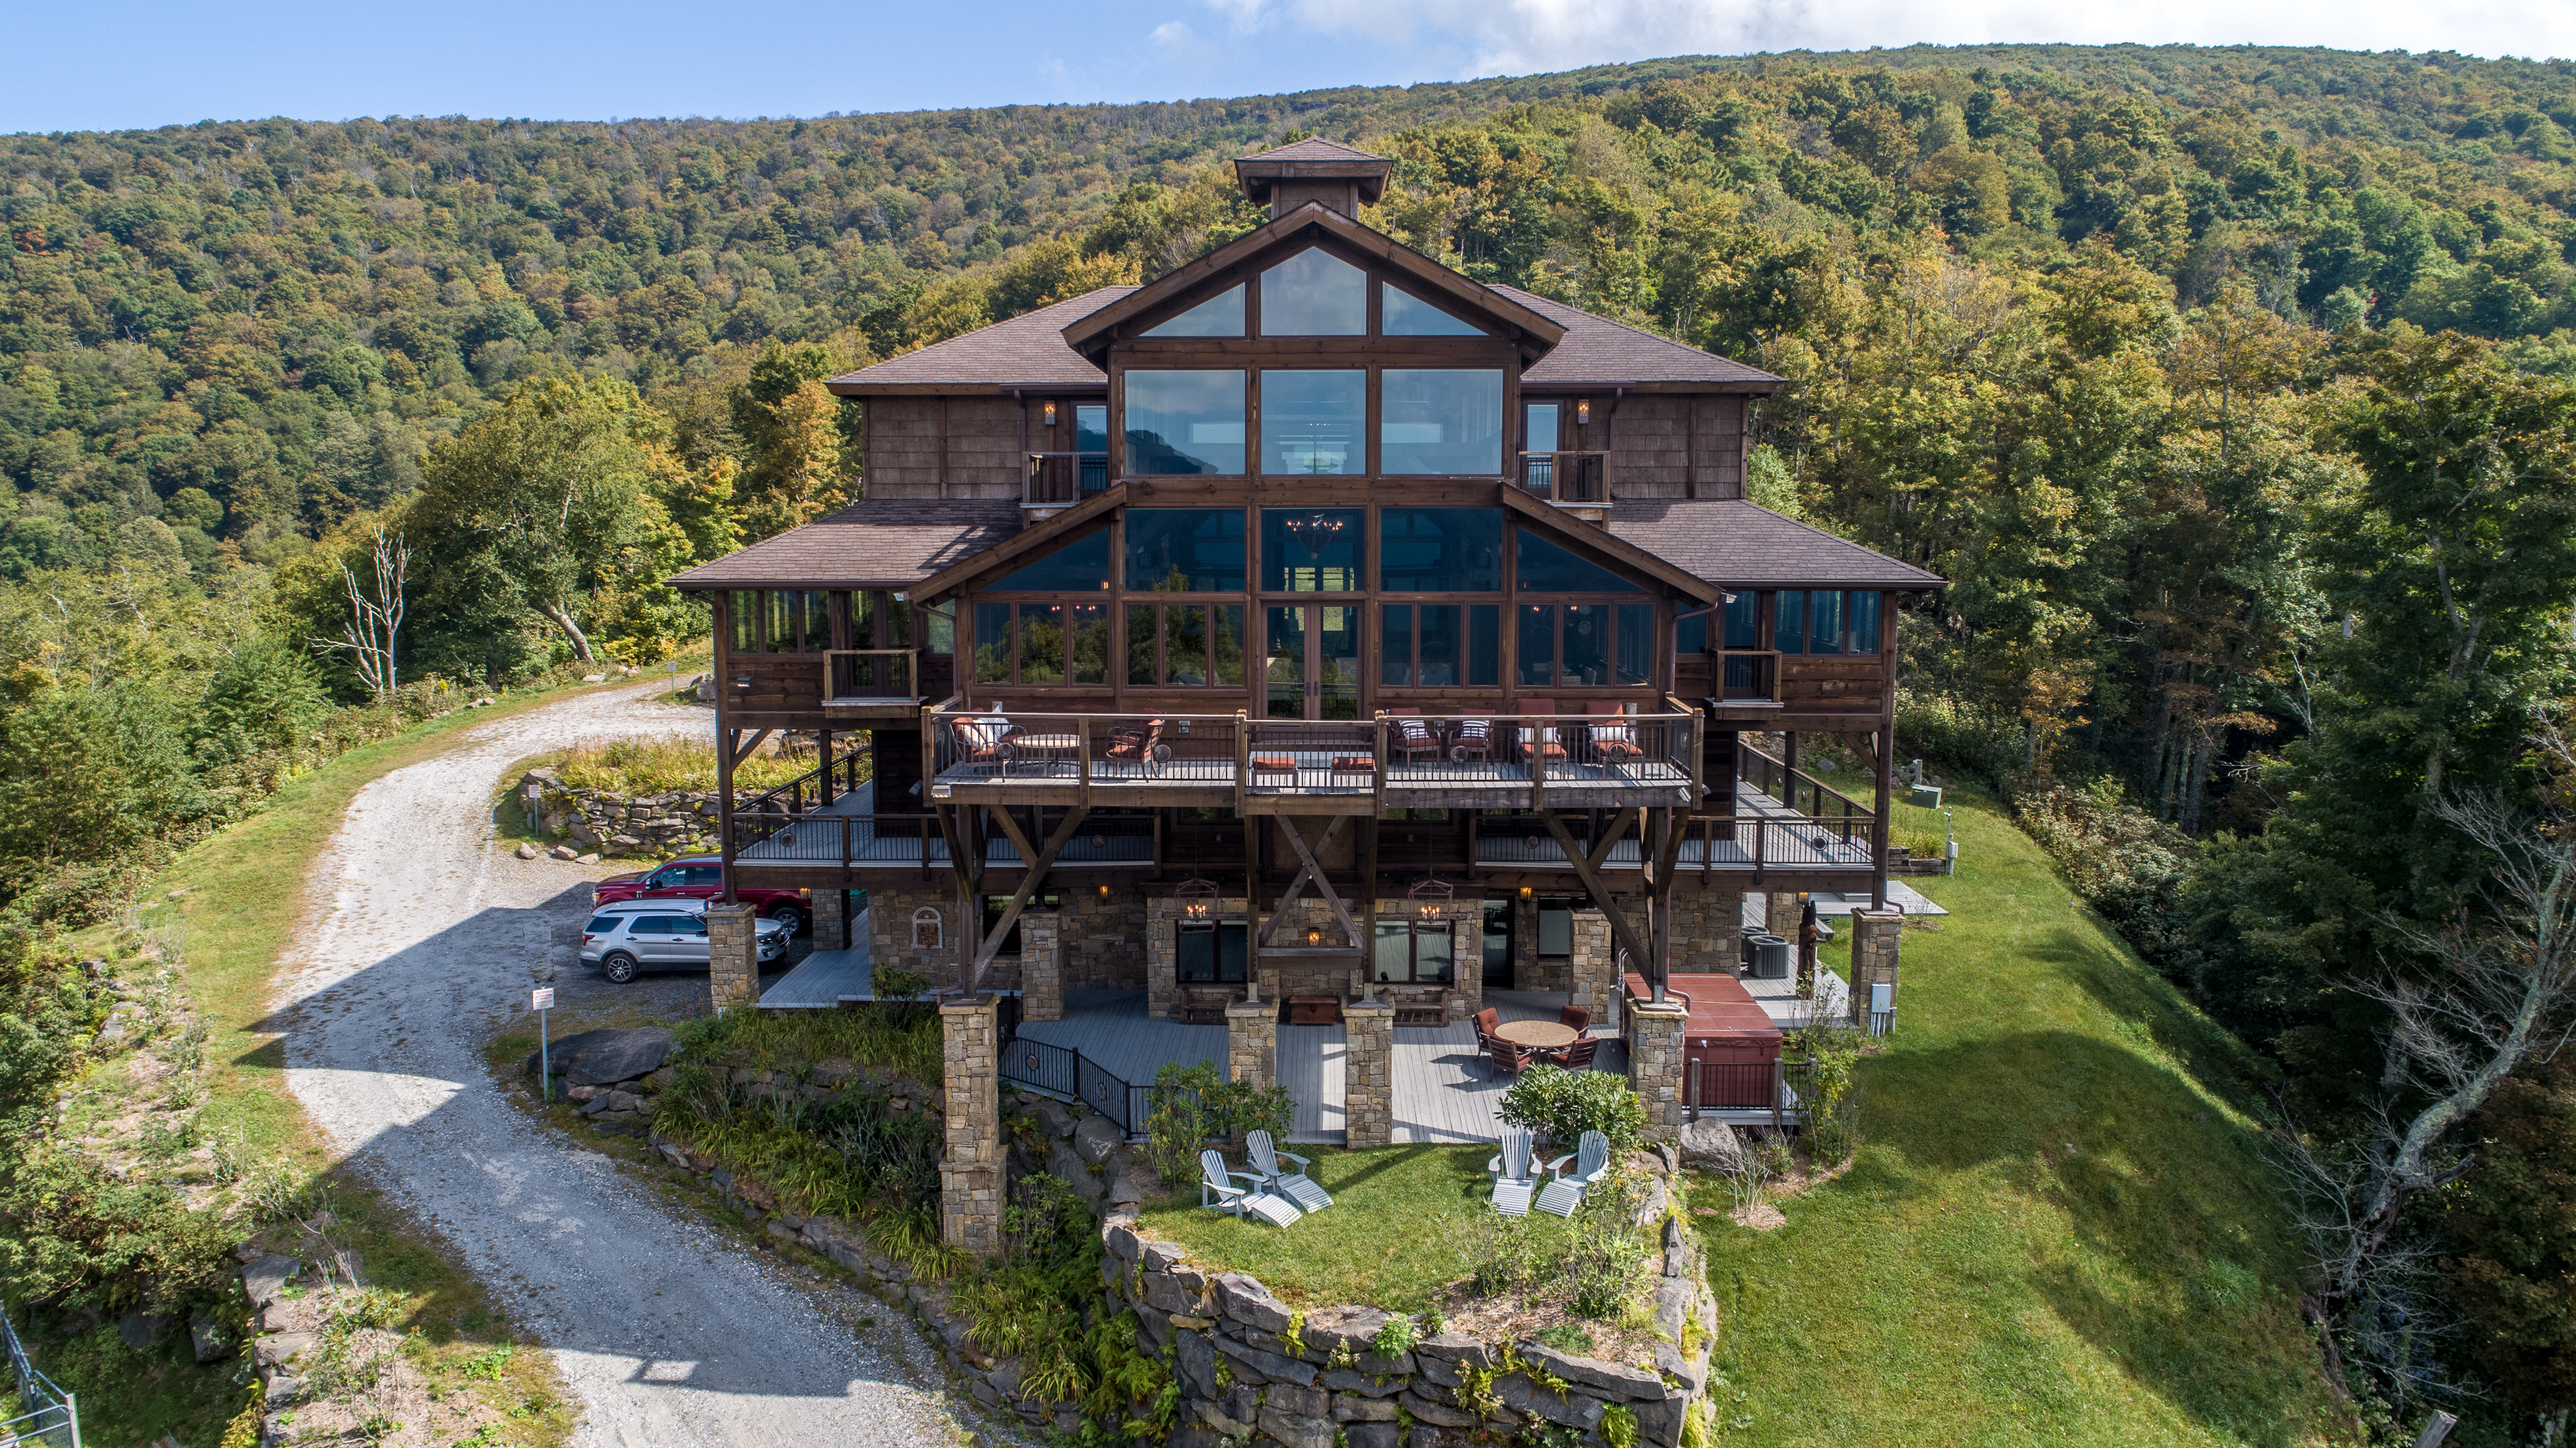 An aerial exterior view of a large timber home surrounded by mountains.